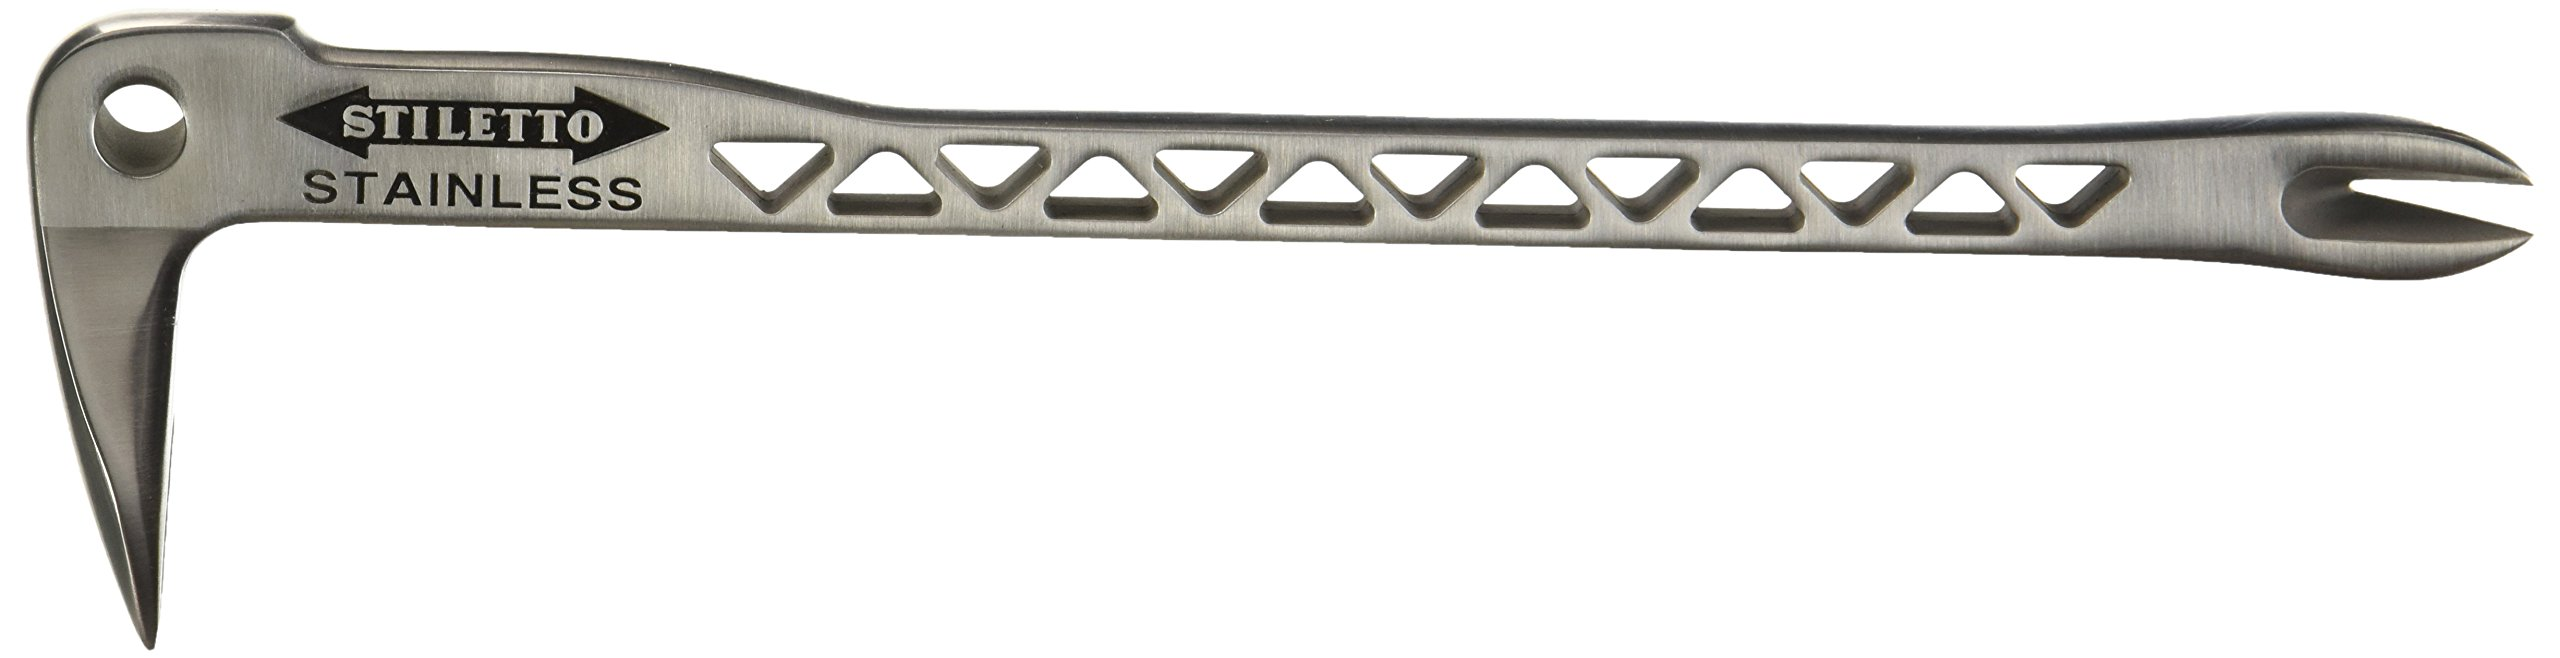 Stiletto SSCLW12 2 Stainless Clawbar Dimpler